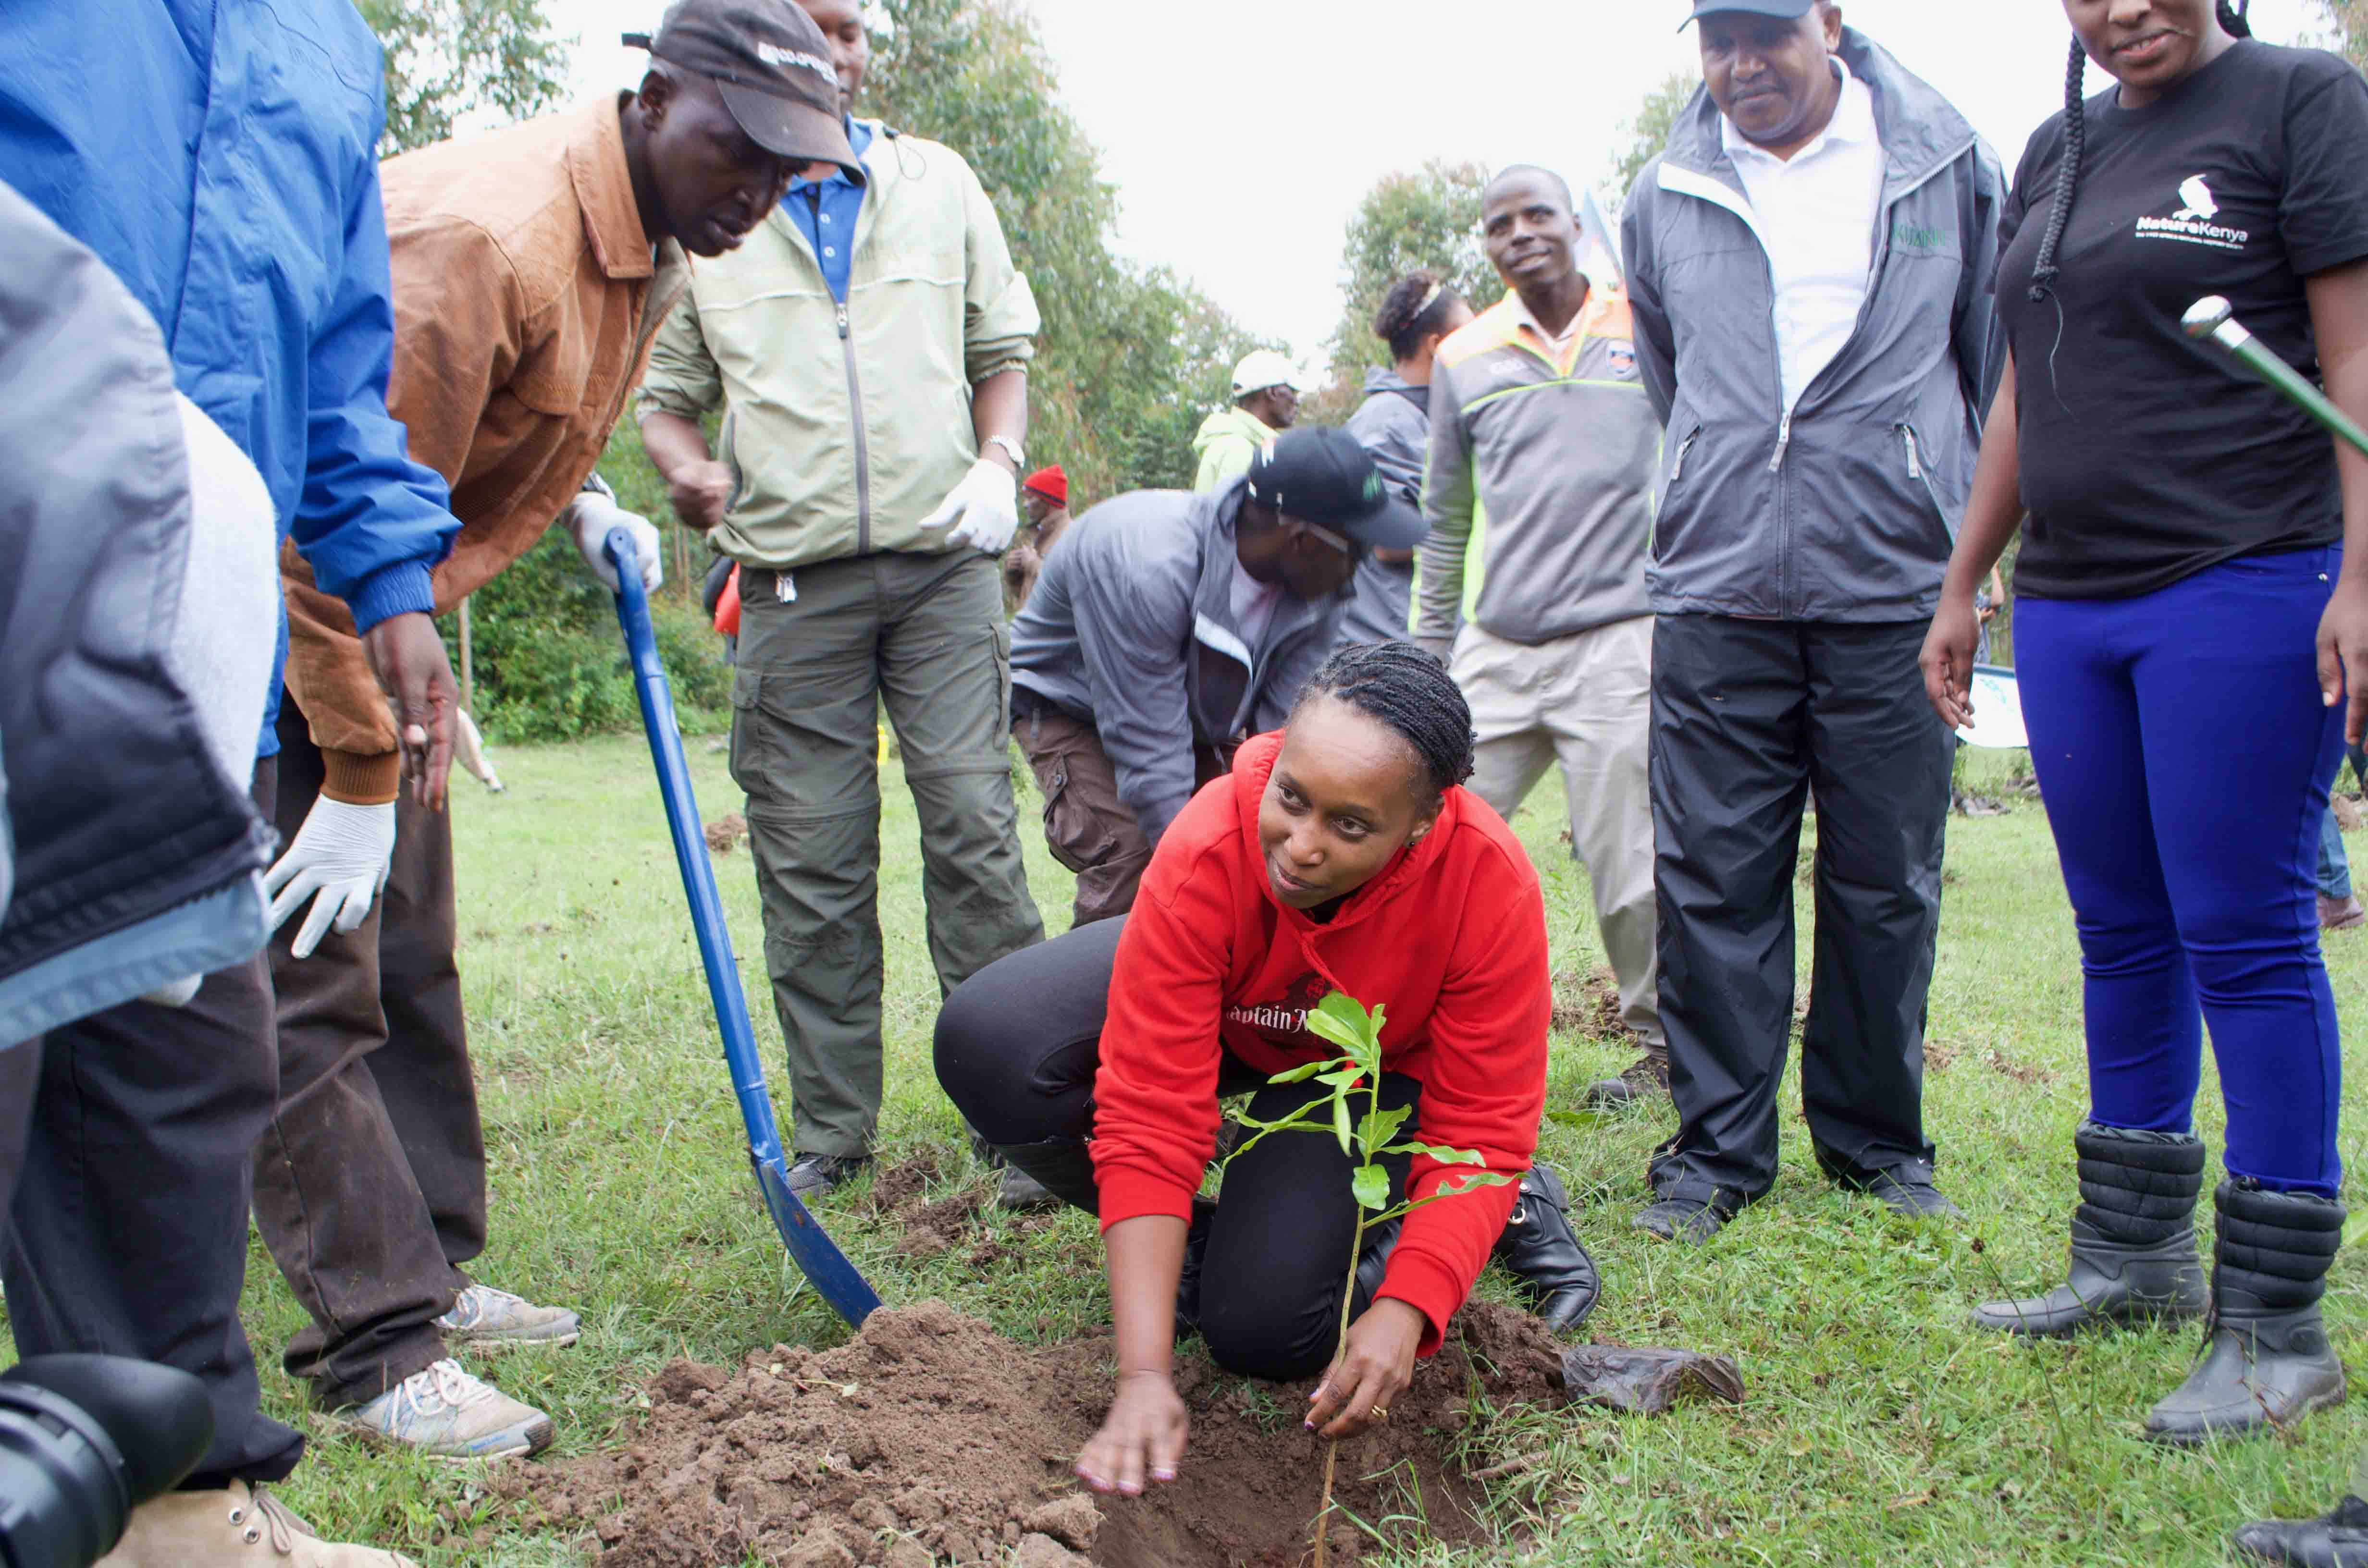 Ms. Kinya Kimotho plants a tree at Naro Moru to launch phase two of the Mt. Kenya Forest restoration initiative